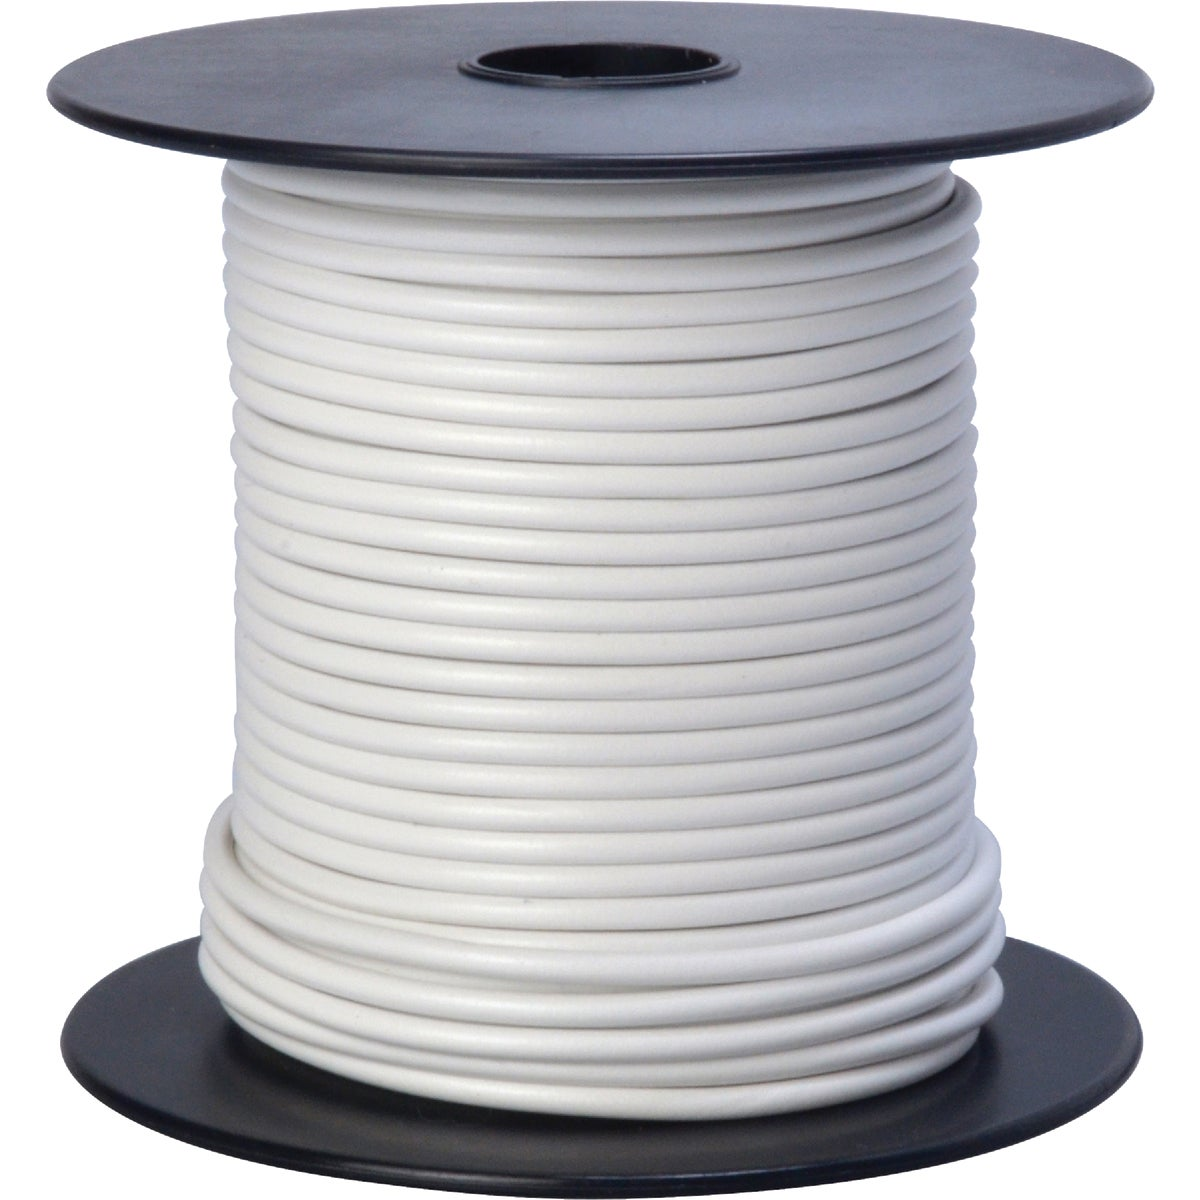 100' 16GA WHT AUTO WIRE - 16-100-17 by Woods Wire Coleman